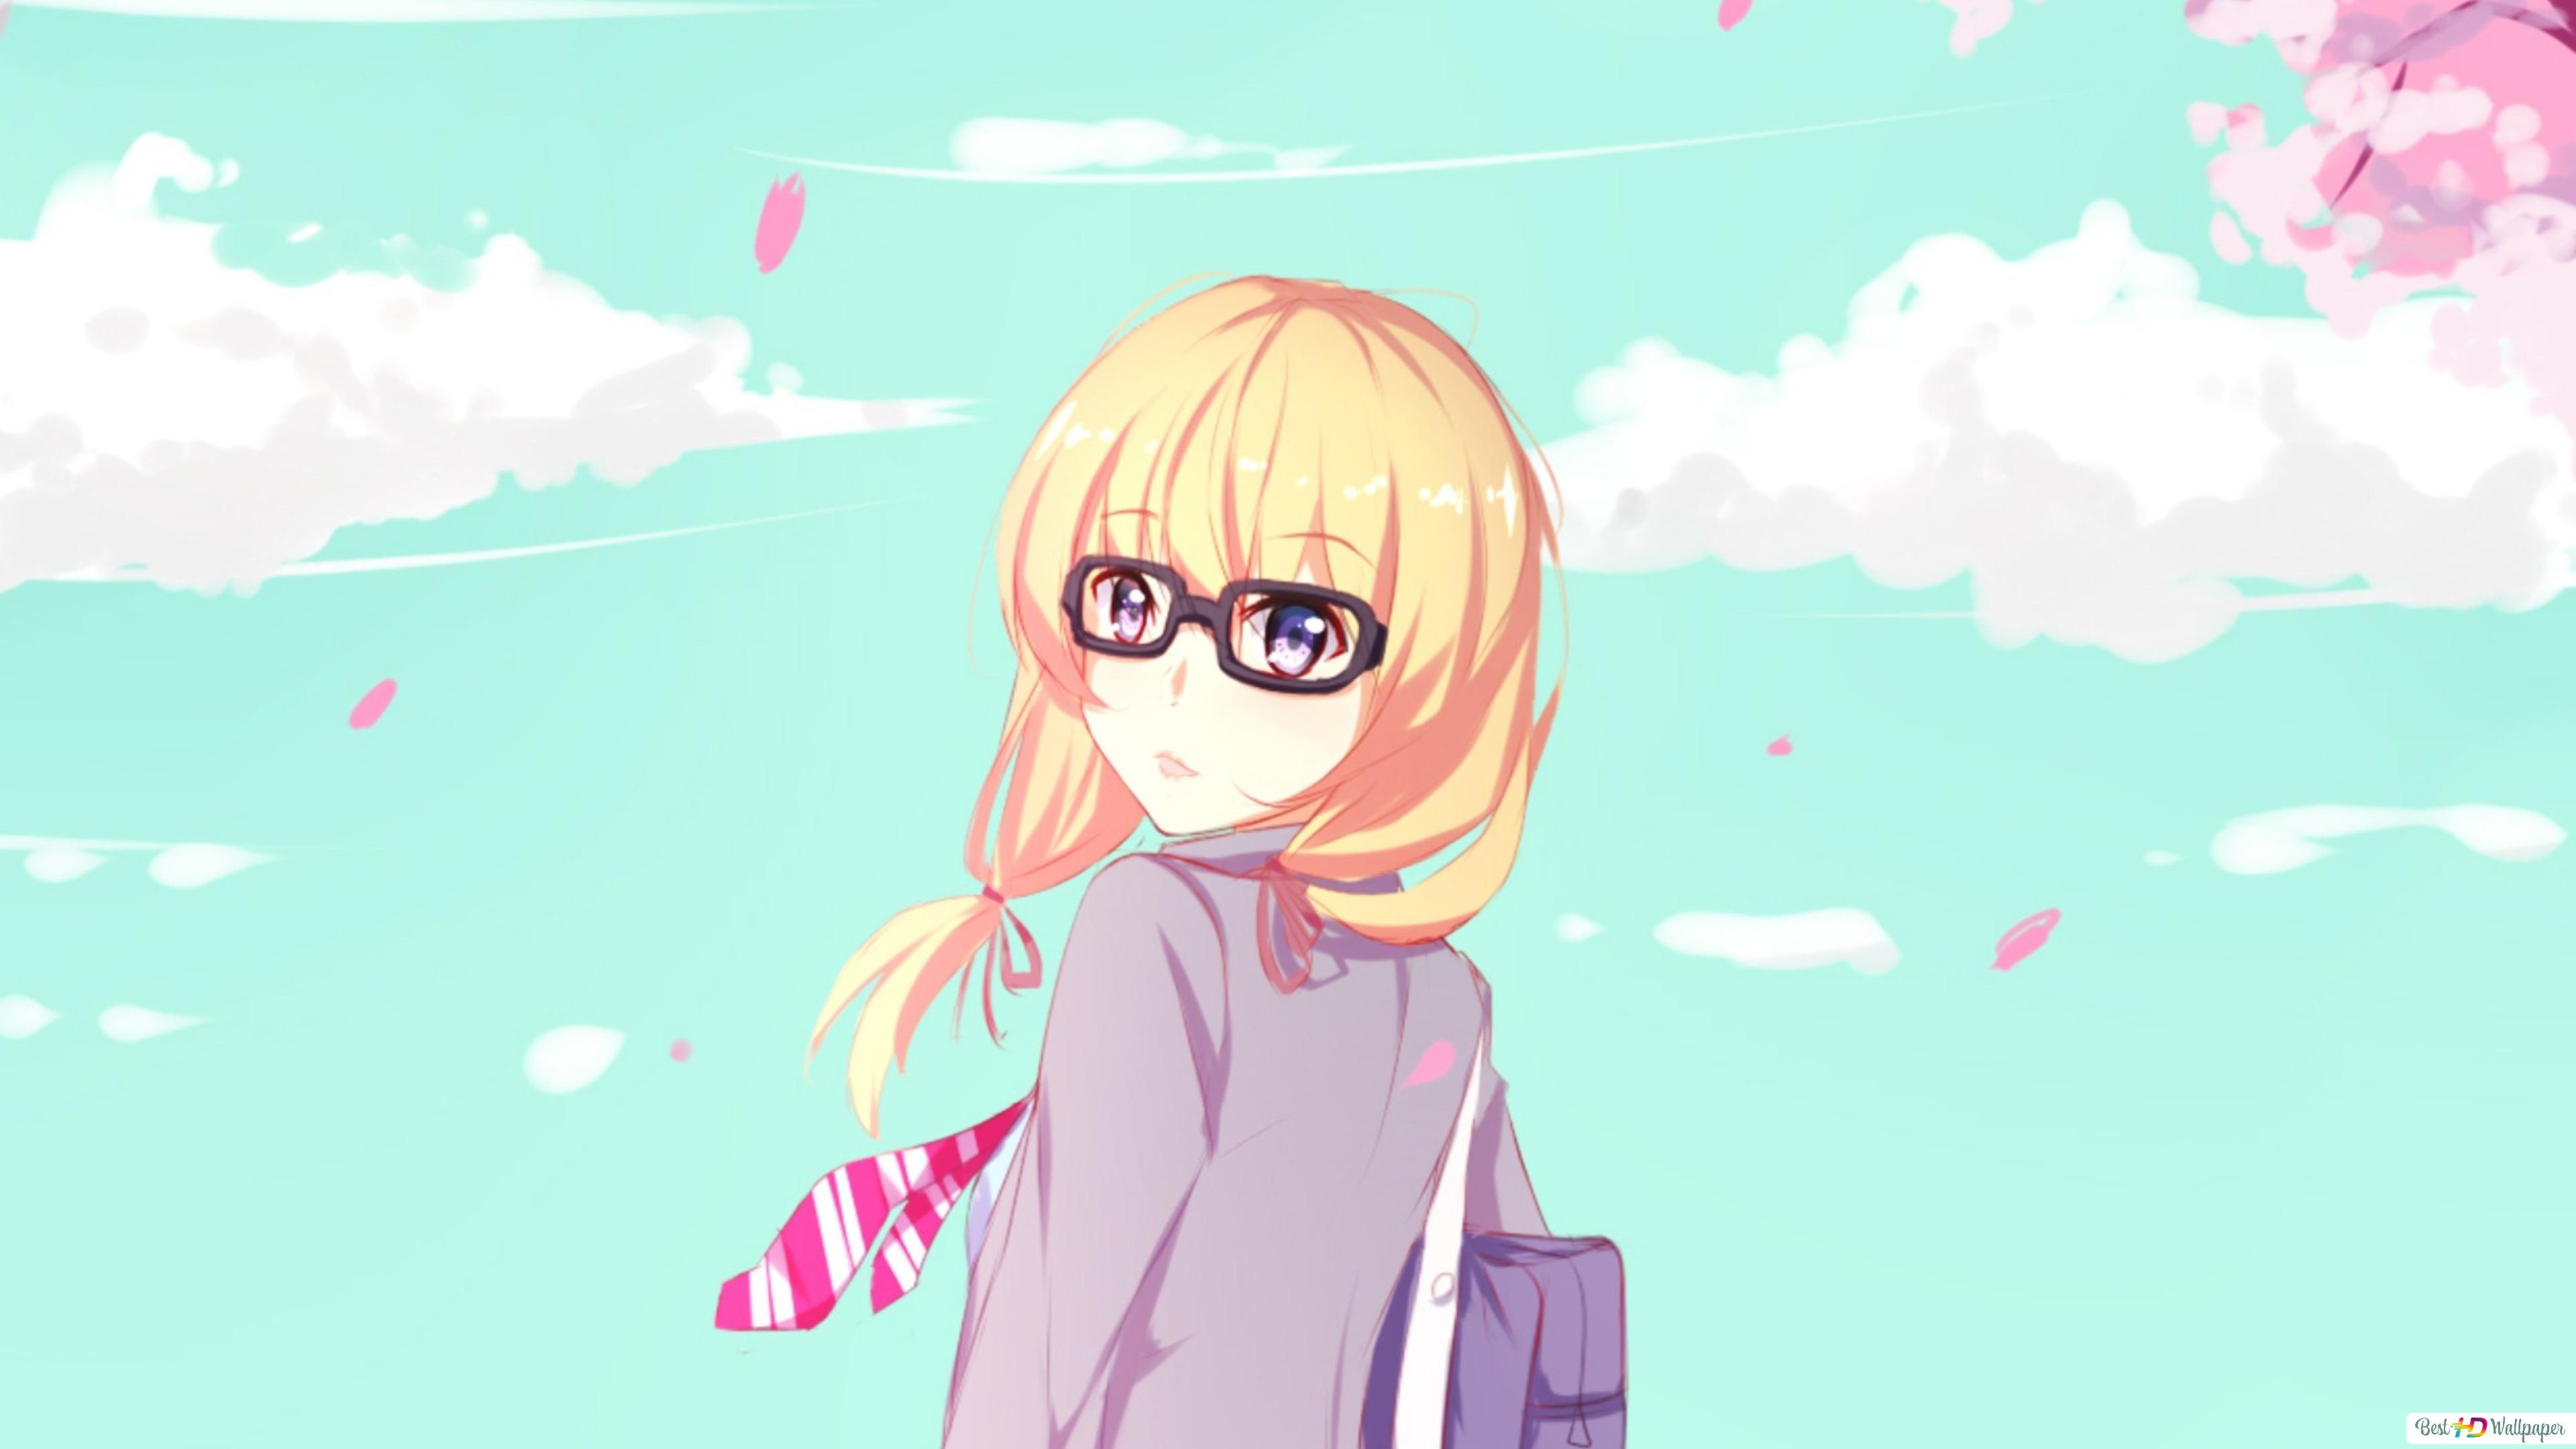 Your Lie In April Kaori Miyazono Hd Wallpaper Download